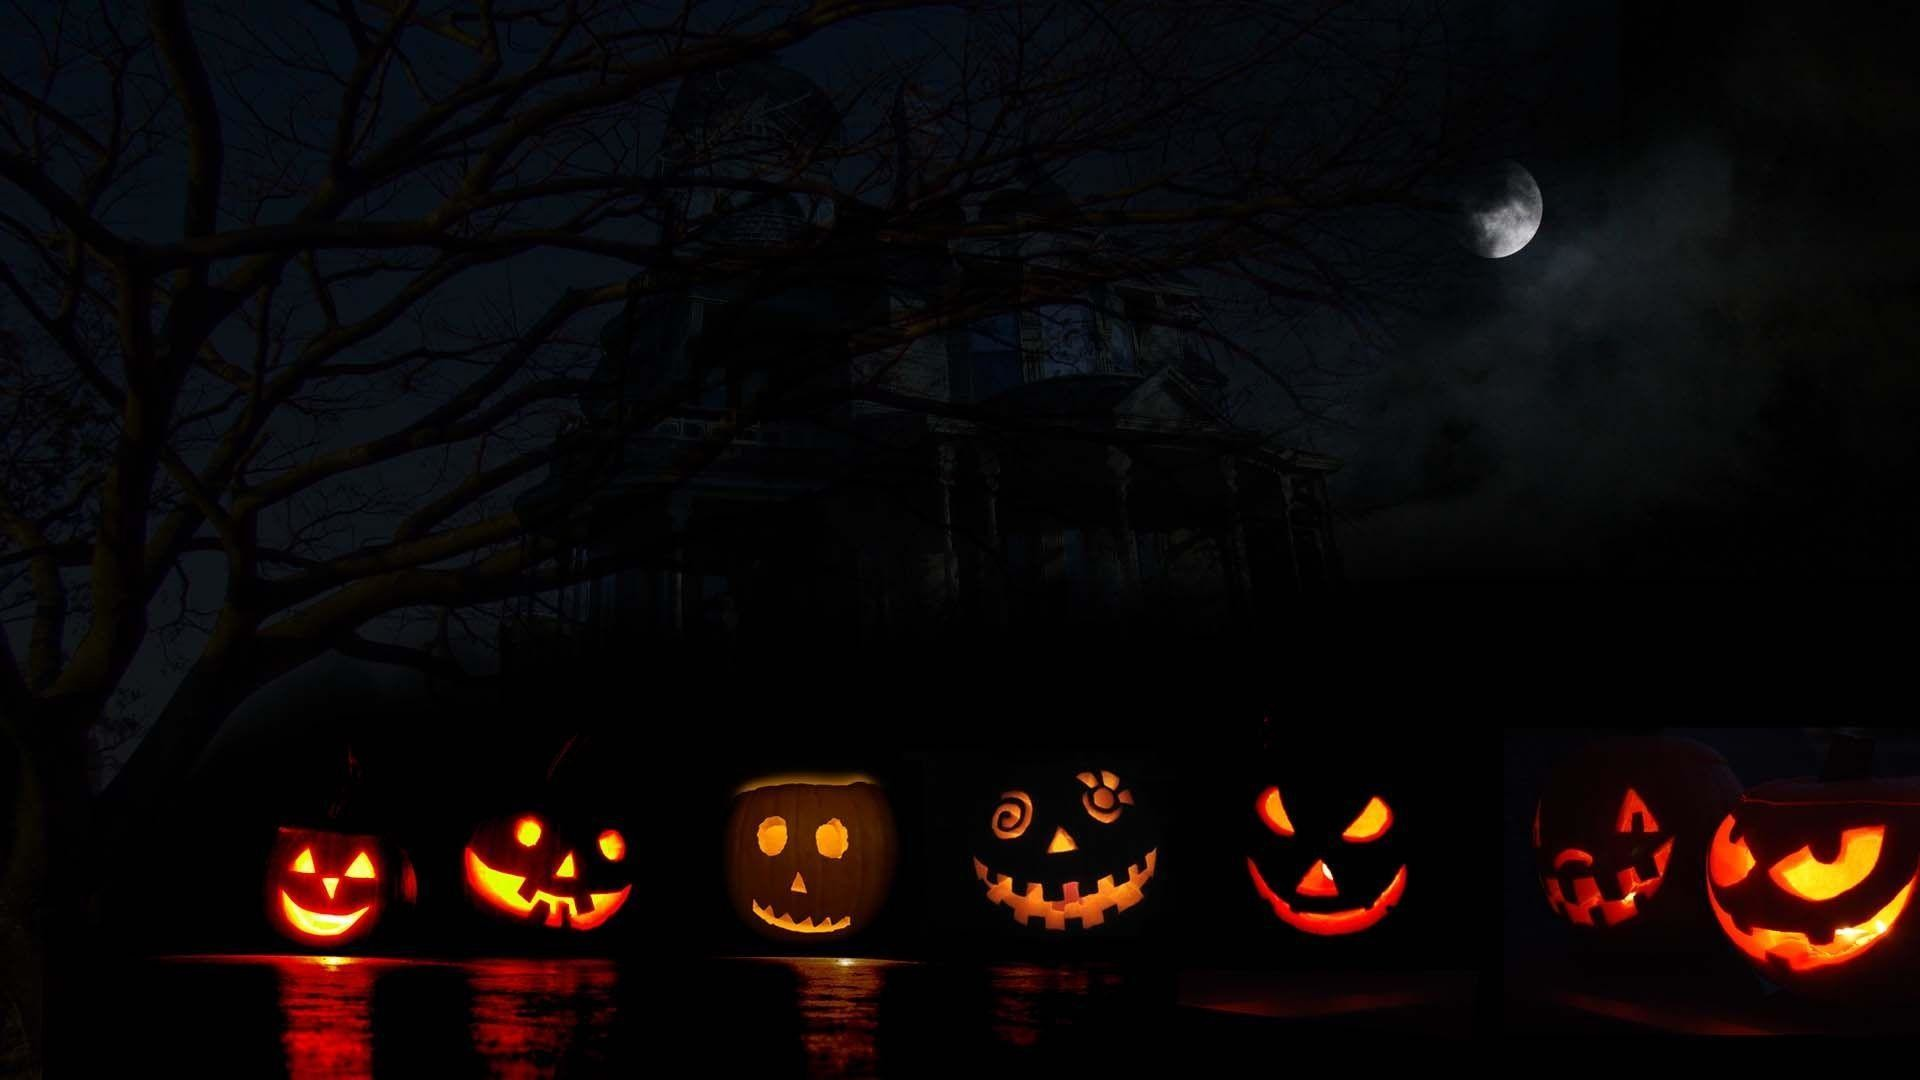 60 Animated Halloween Wallpapers on WallpaperPlay 1920x1080